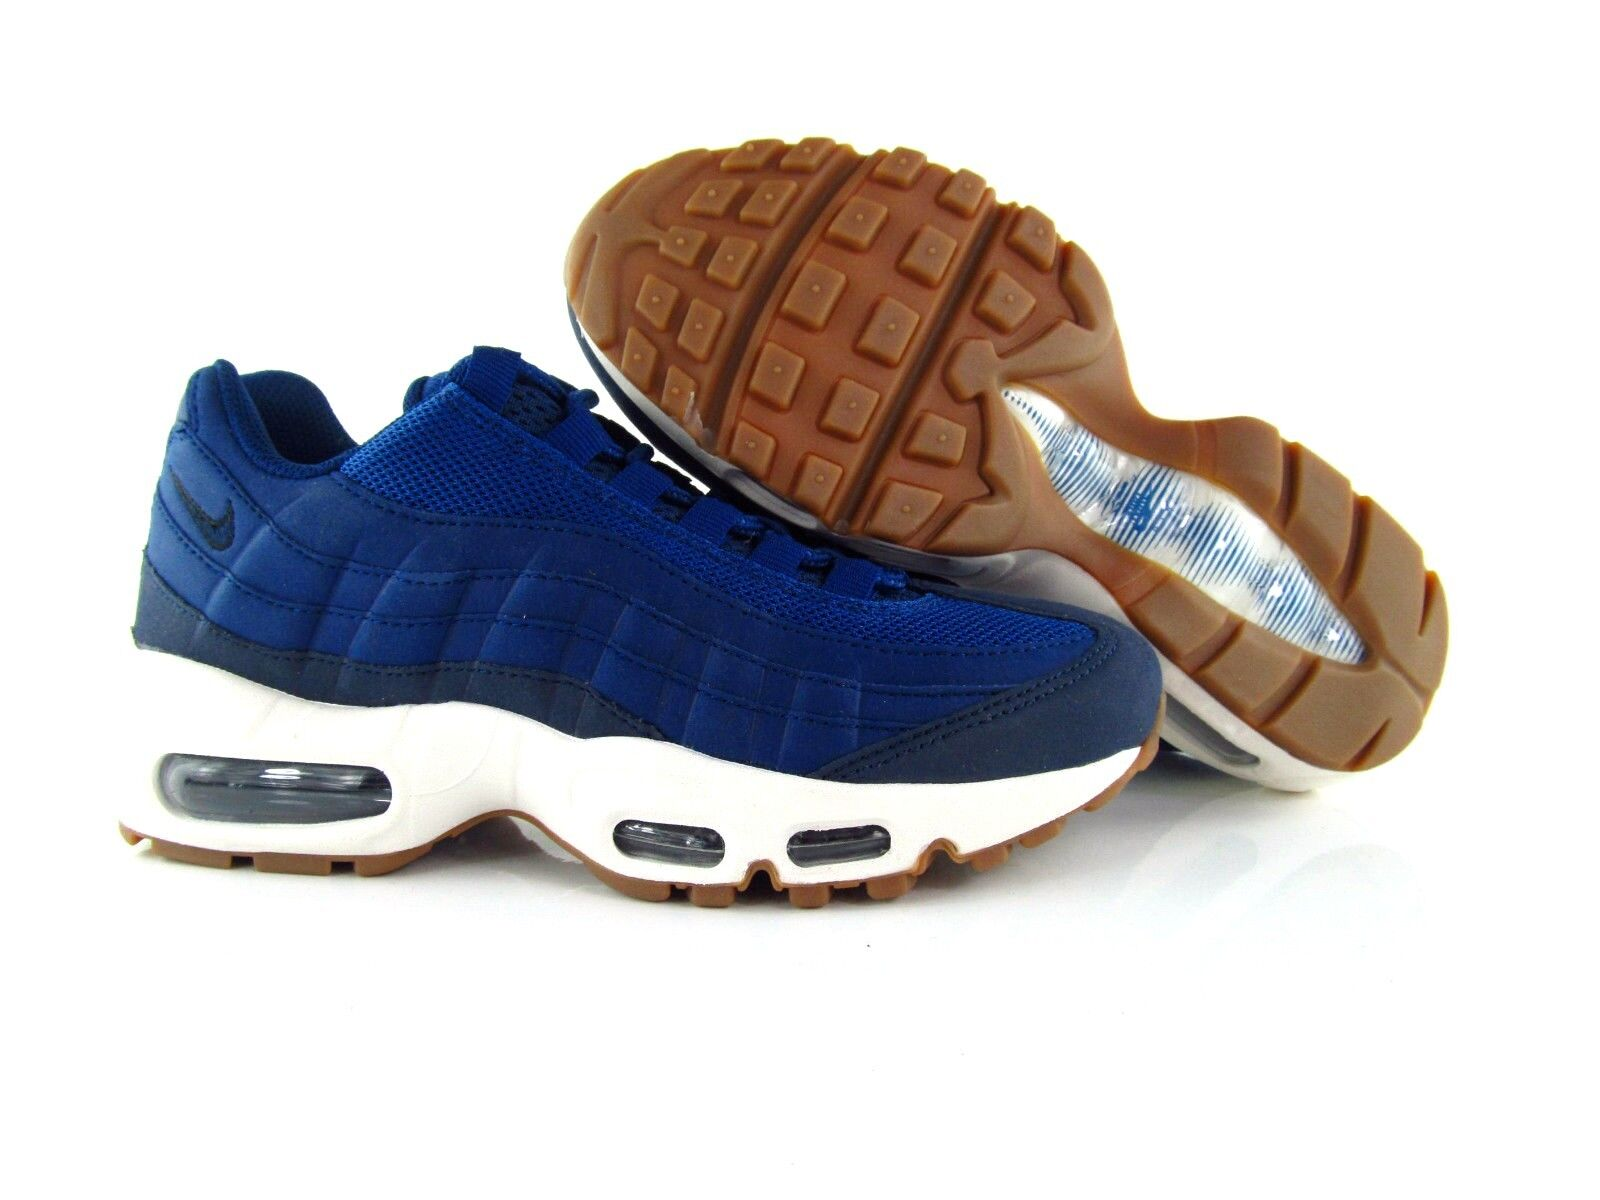 Nike Wmns Dark Air Max 95 OG Dark Wmns Blue UK_5.5 US_8 Eur 39 81d73e